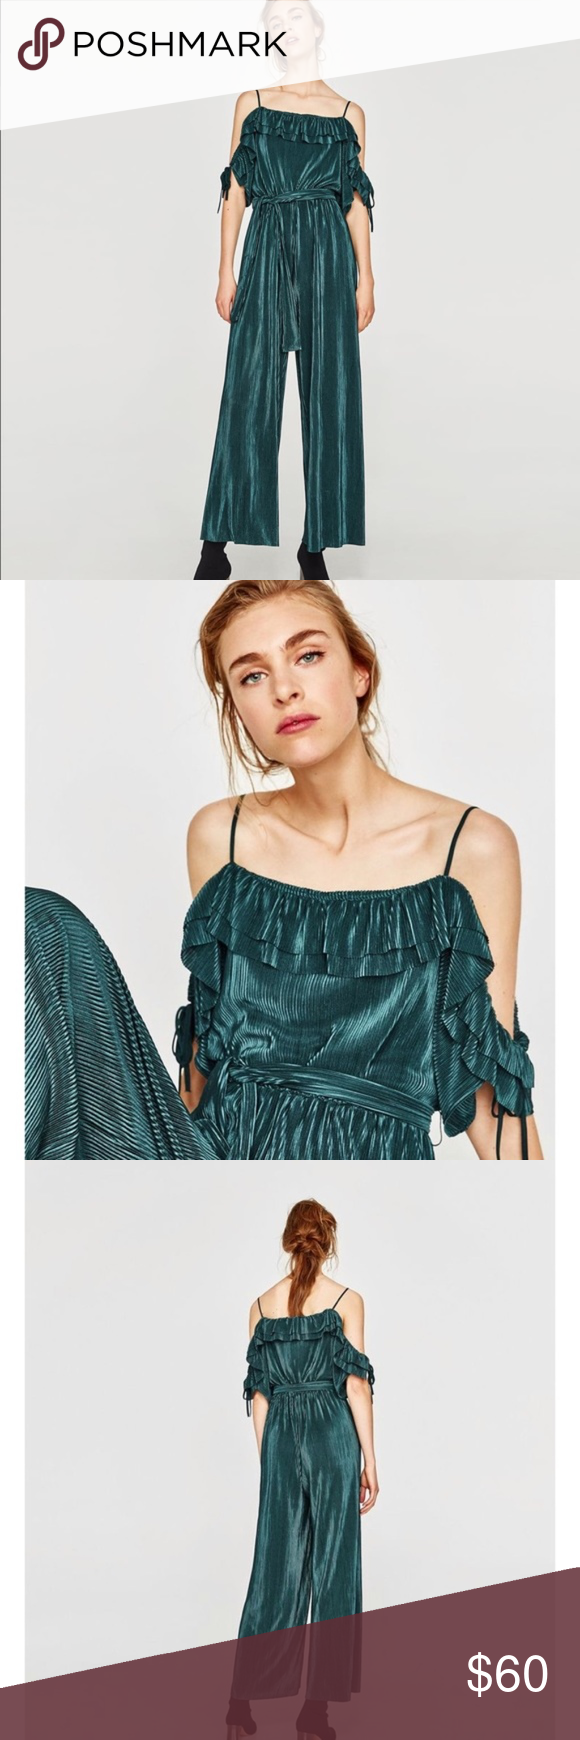 4a3032a51010 Zara Off the shoulder long ruffle pleated jumpsuit Zara Off the shoulder  long jumpsuit with ruffle neckline. Like new condition. Beautiful forest  green ...